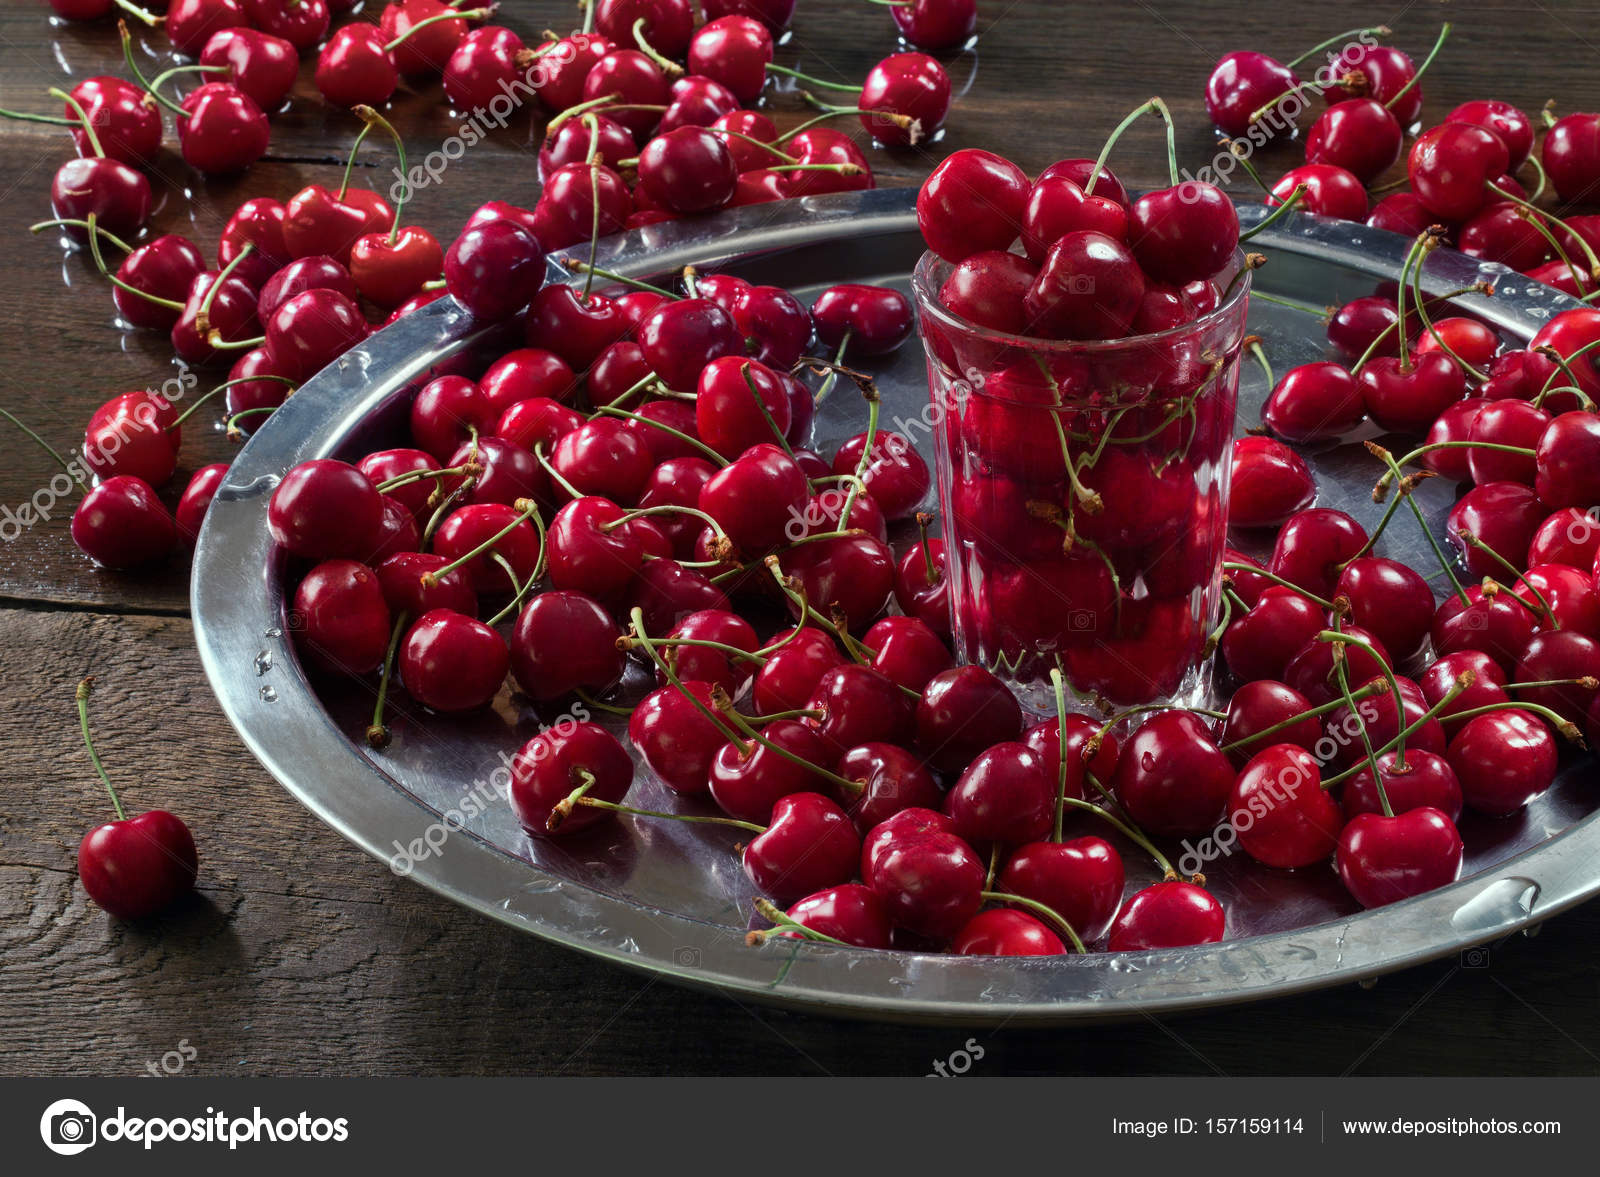 A lot of cherries on the table, on a tray and in a glass